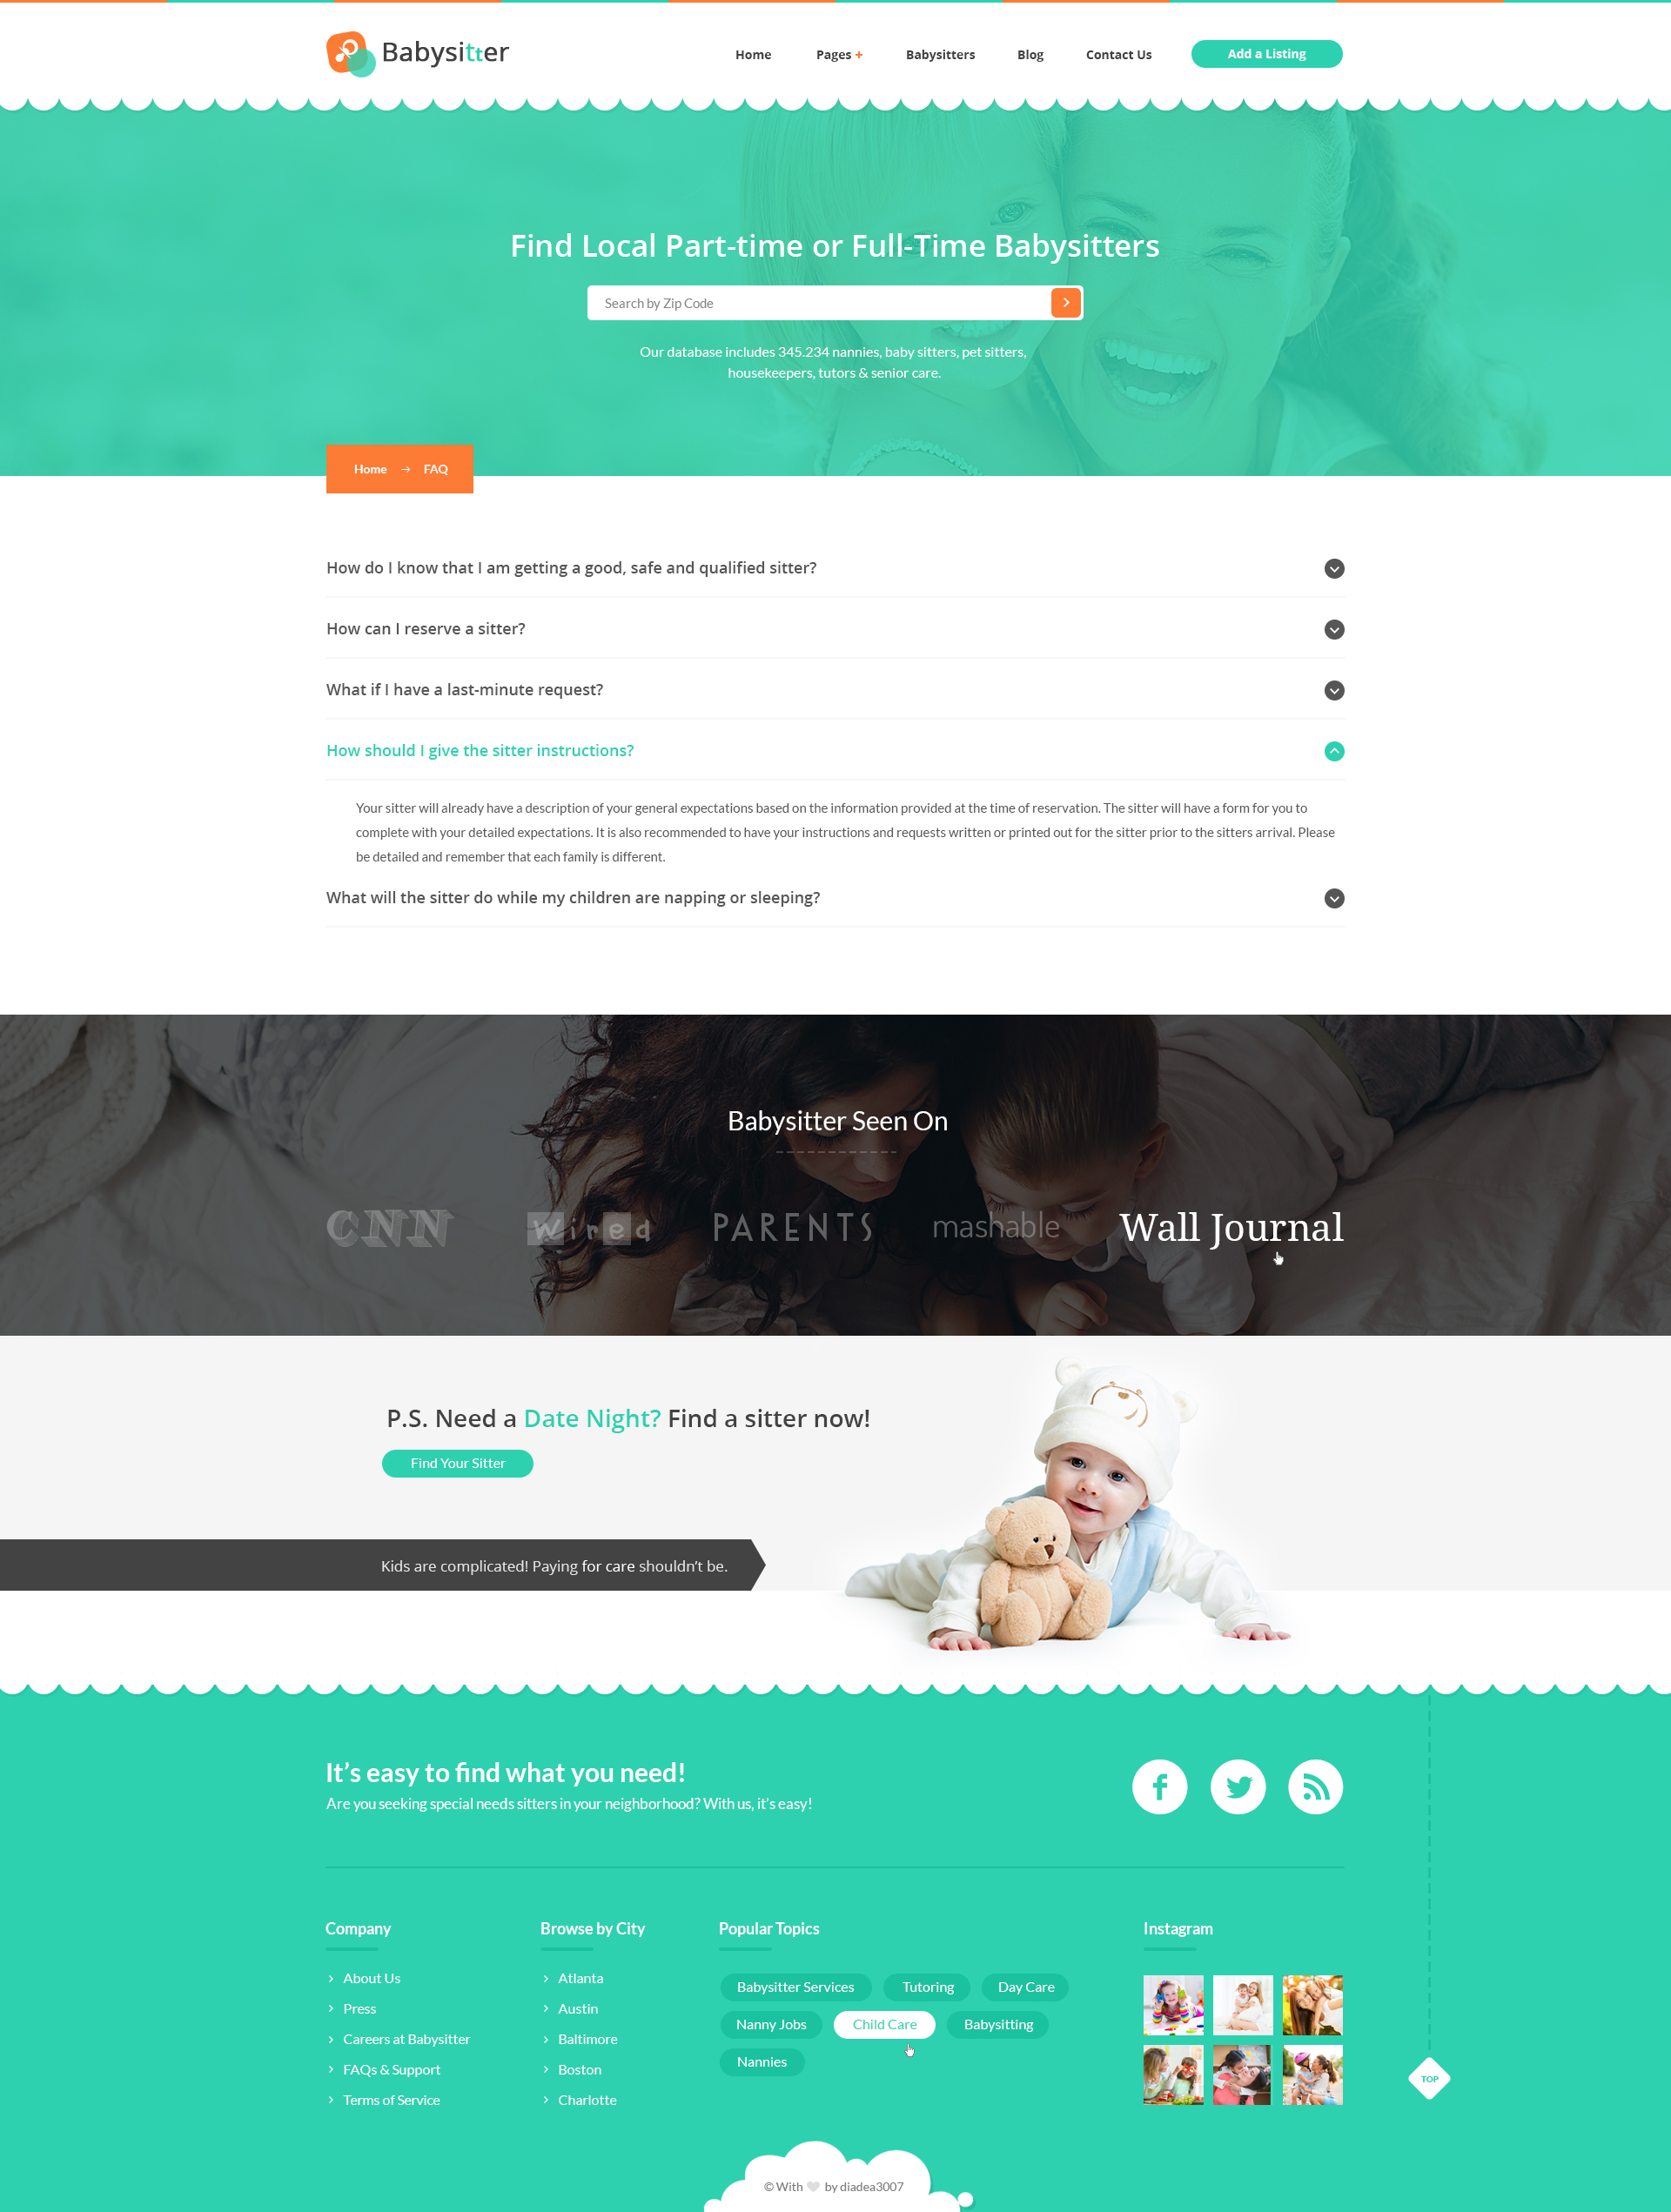 babysitter directory babysitting psd template by diadea3007 07 listing single post babysitter jpg 08 add a listing step 1 jpg 09 add a listing step 2 jpg 10 add a listing step 3 jpg 11 add a listing step 4 jpg